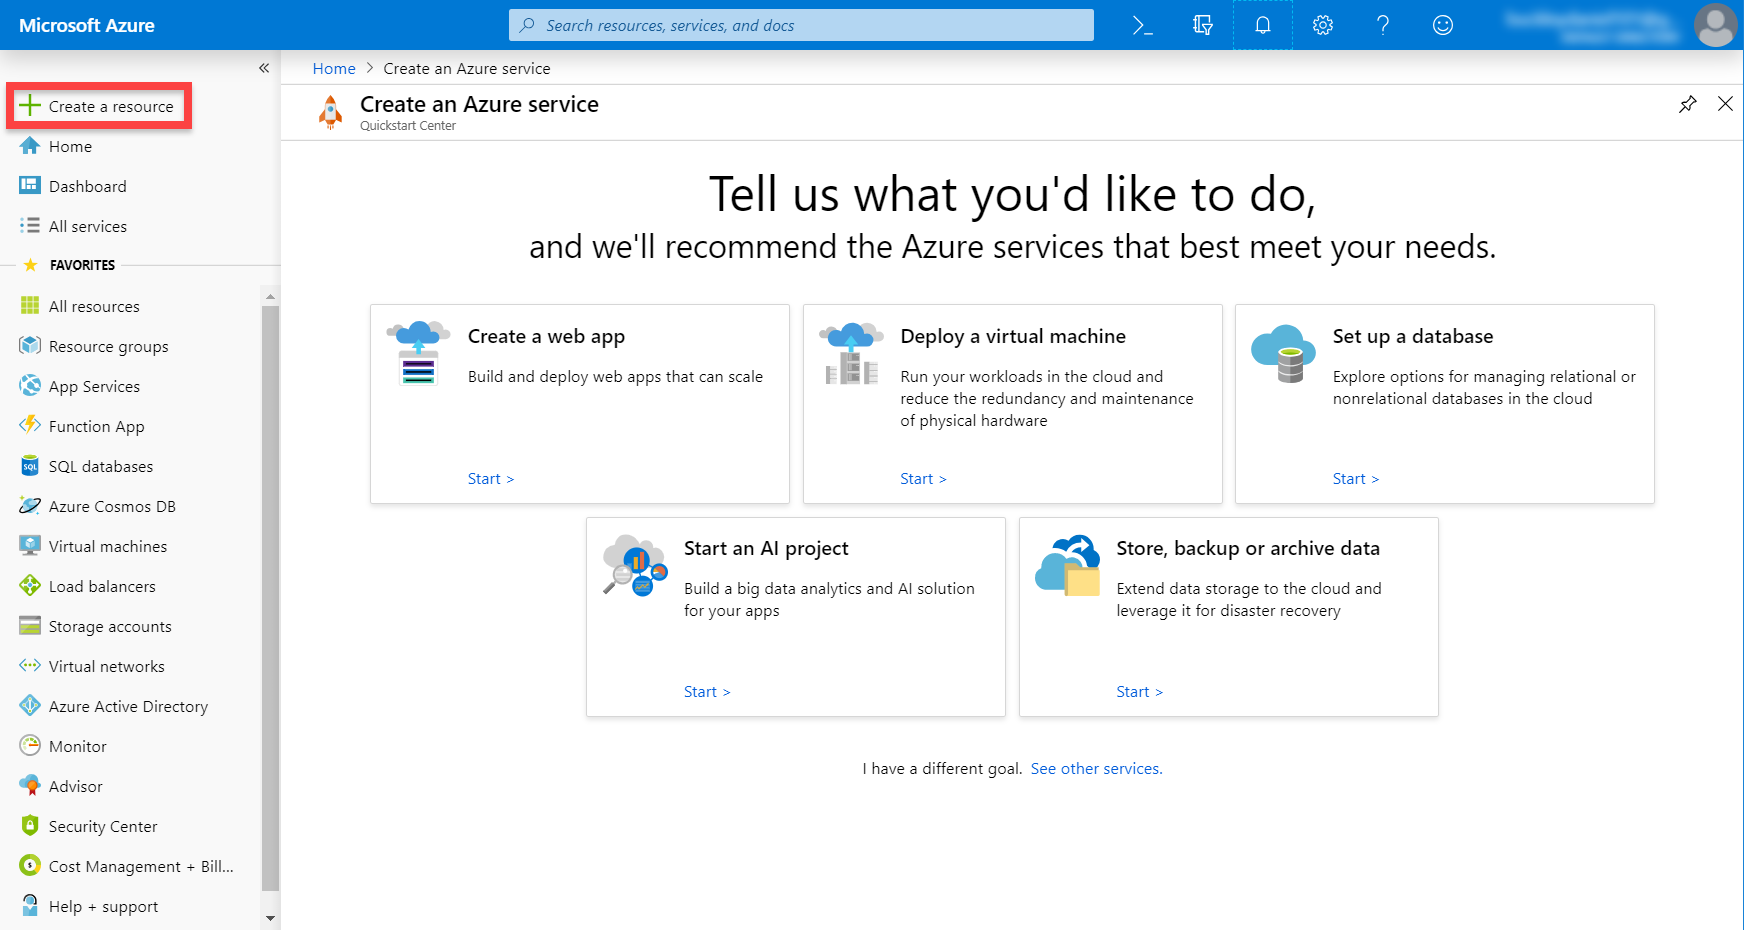 Microsoft Azure dashboard for creating a service